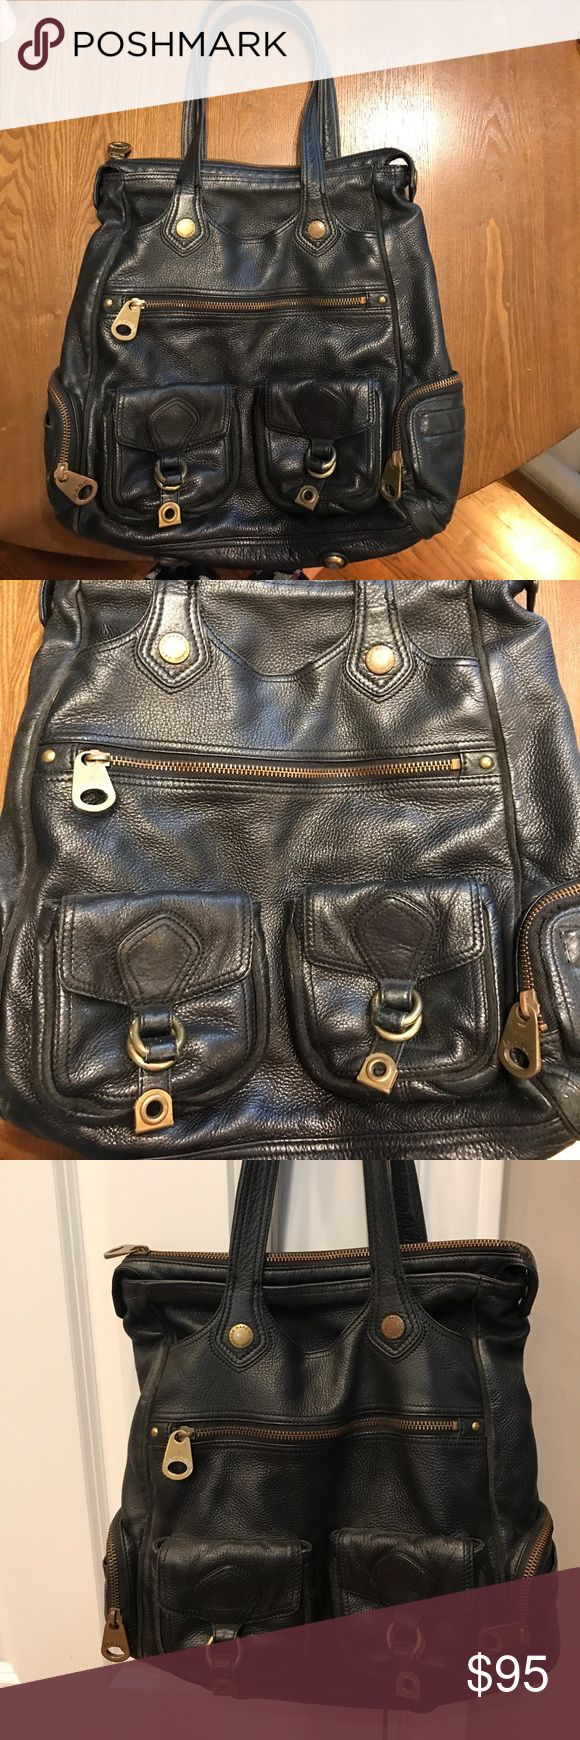 Marc by Marc Jacobs oversized handbag Black pebbled leather with multiple pockets and lots of storage space, great for work or family! Marc By Marc Jacobs Bags Totes